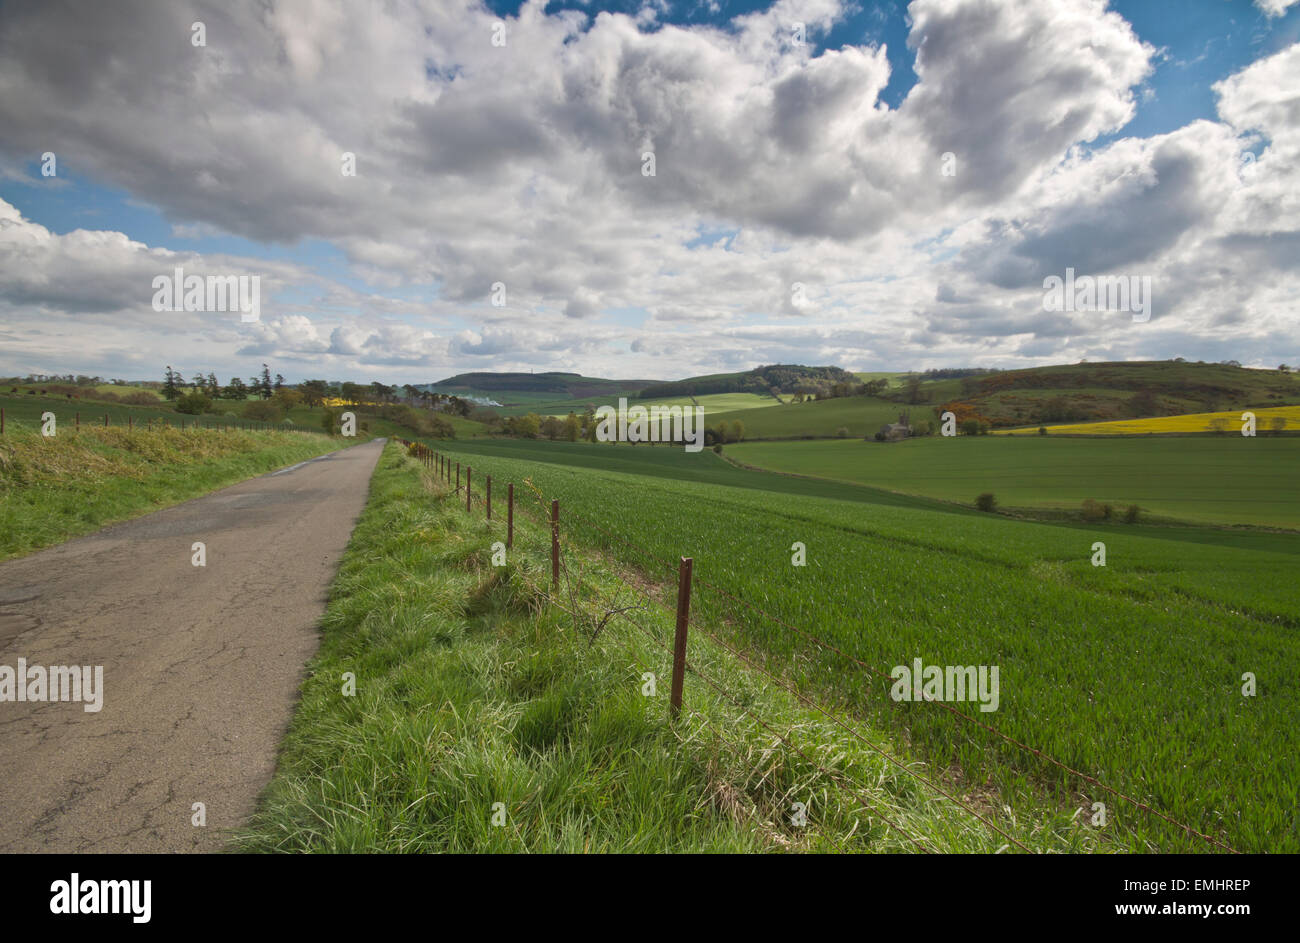 Landscape shot of a minor road in the Fife region of Scotland running along fields under a fluffy cloud sky - Stock Image